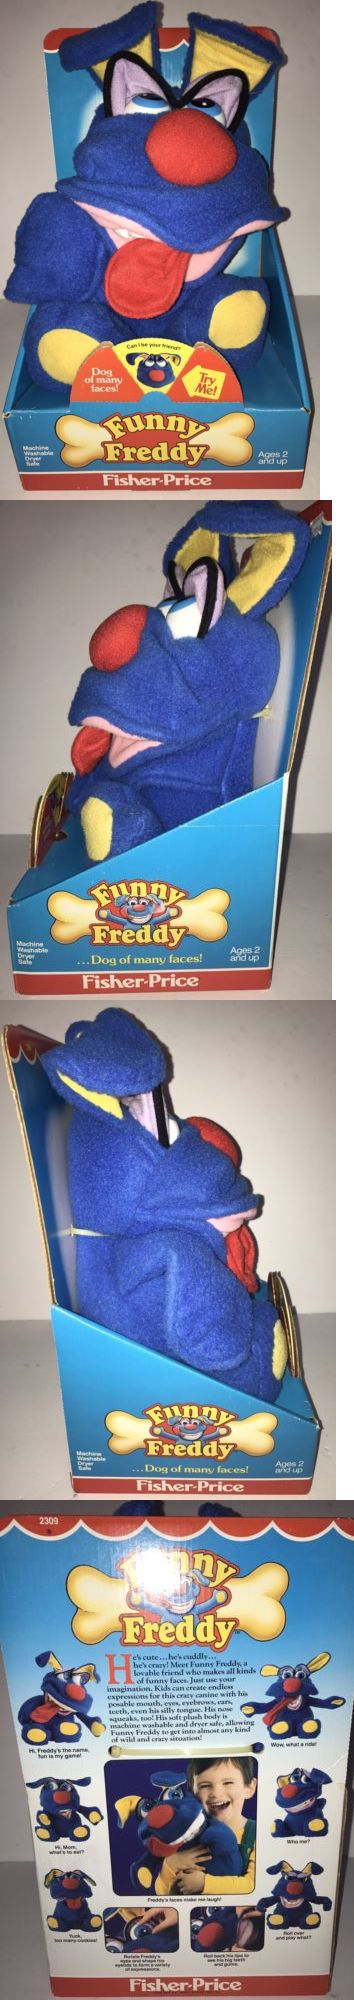 Vintage 165956: Vintage 1987 Fisher Price Funny Freddy Blue Stuffed Animal New In Box Rare!! -> BUY IT NOW ONLY: $36.79 on eBay!